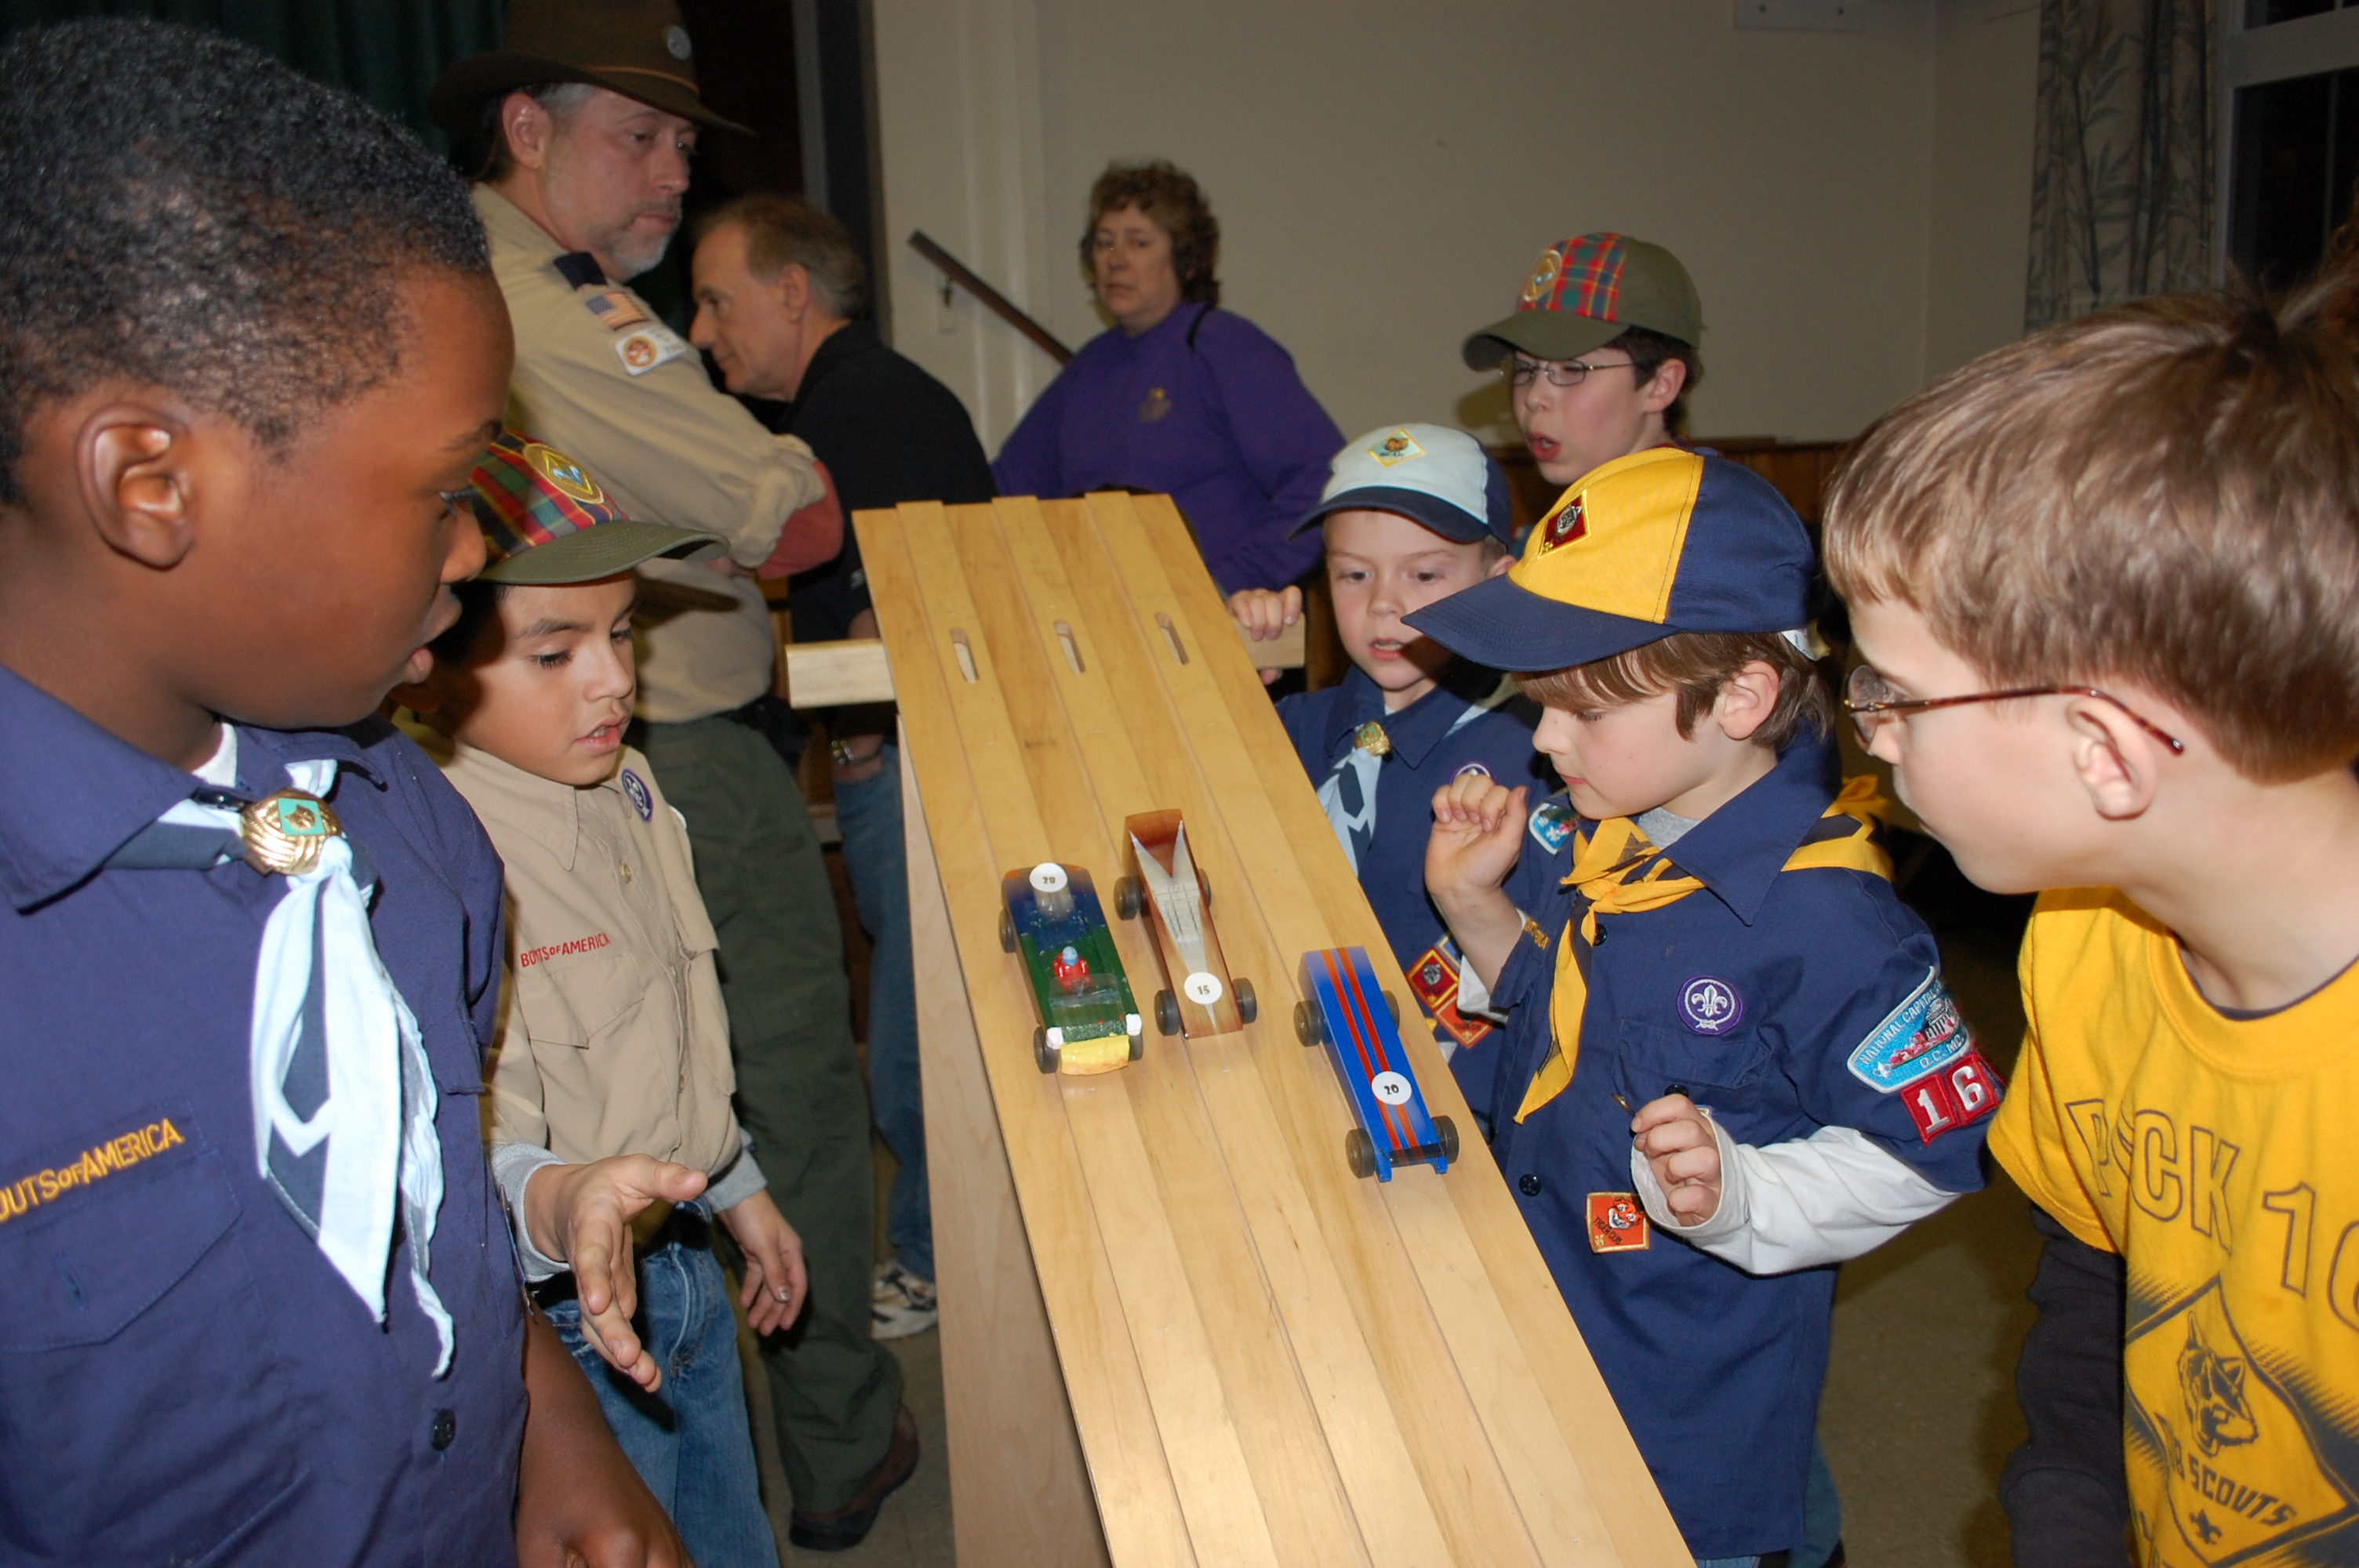 File Cub Scout Pinewood Derby Start